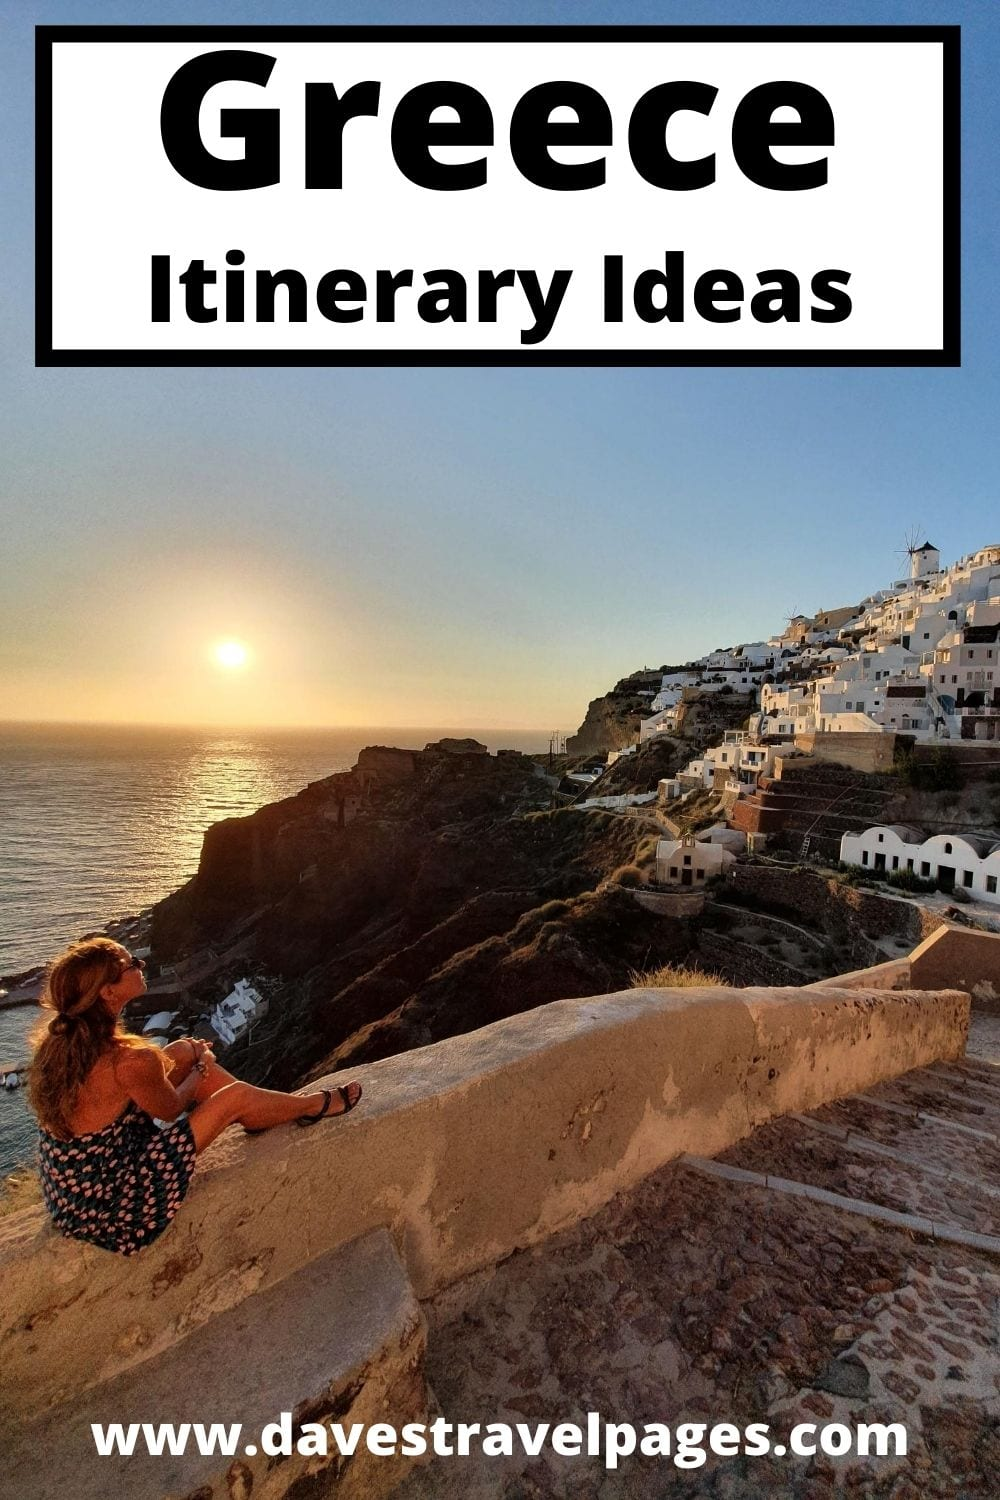 Greece Itinerary Suggestions: Spend 10 days in Greece enjoying the best the country has to offer by choosing one of these 10 day Greece itinerary ideas.